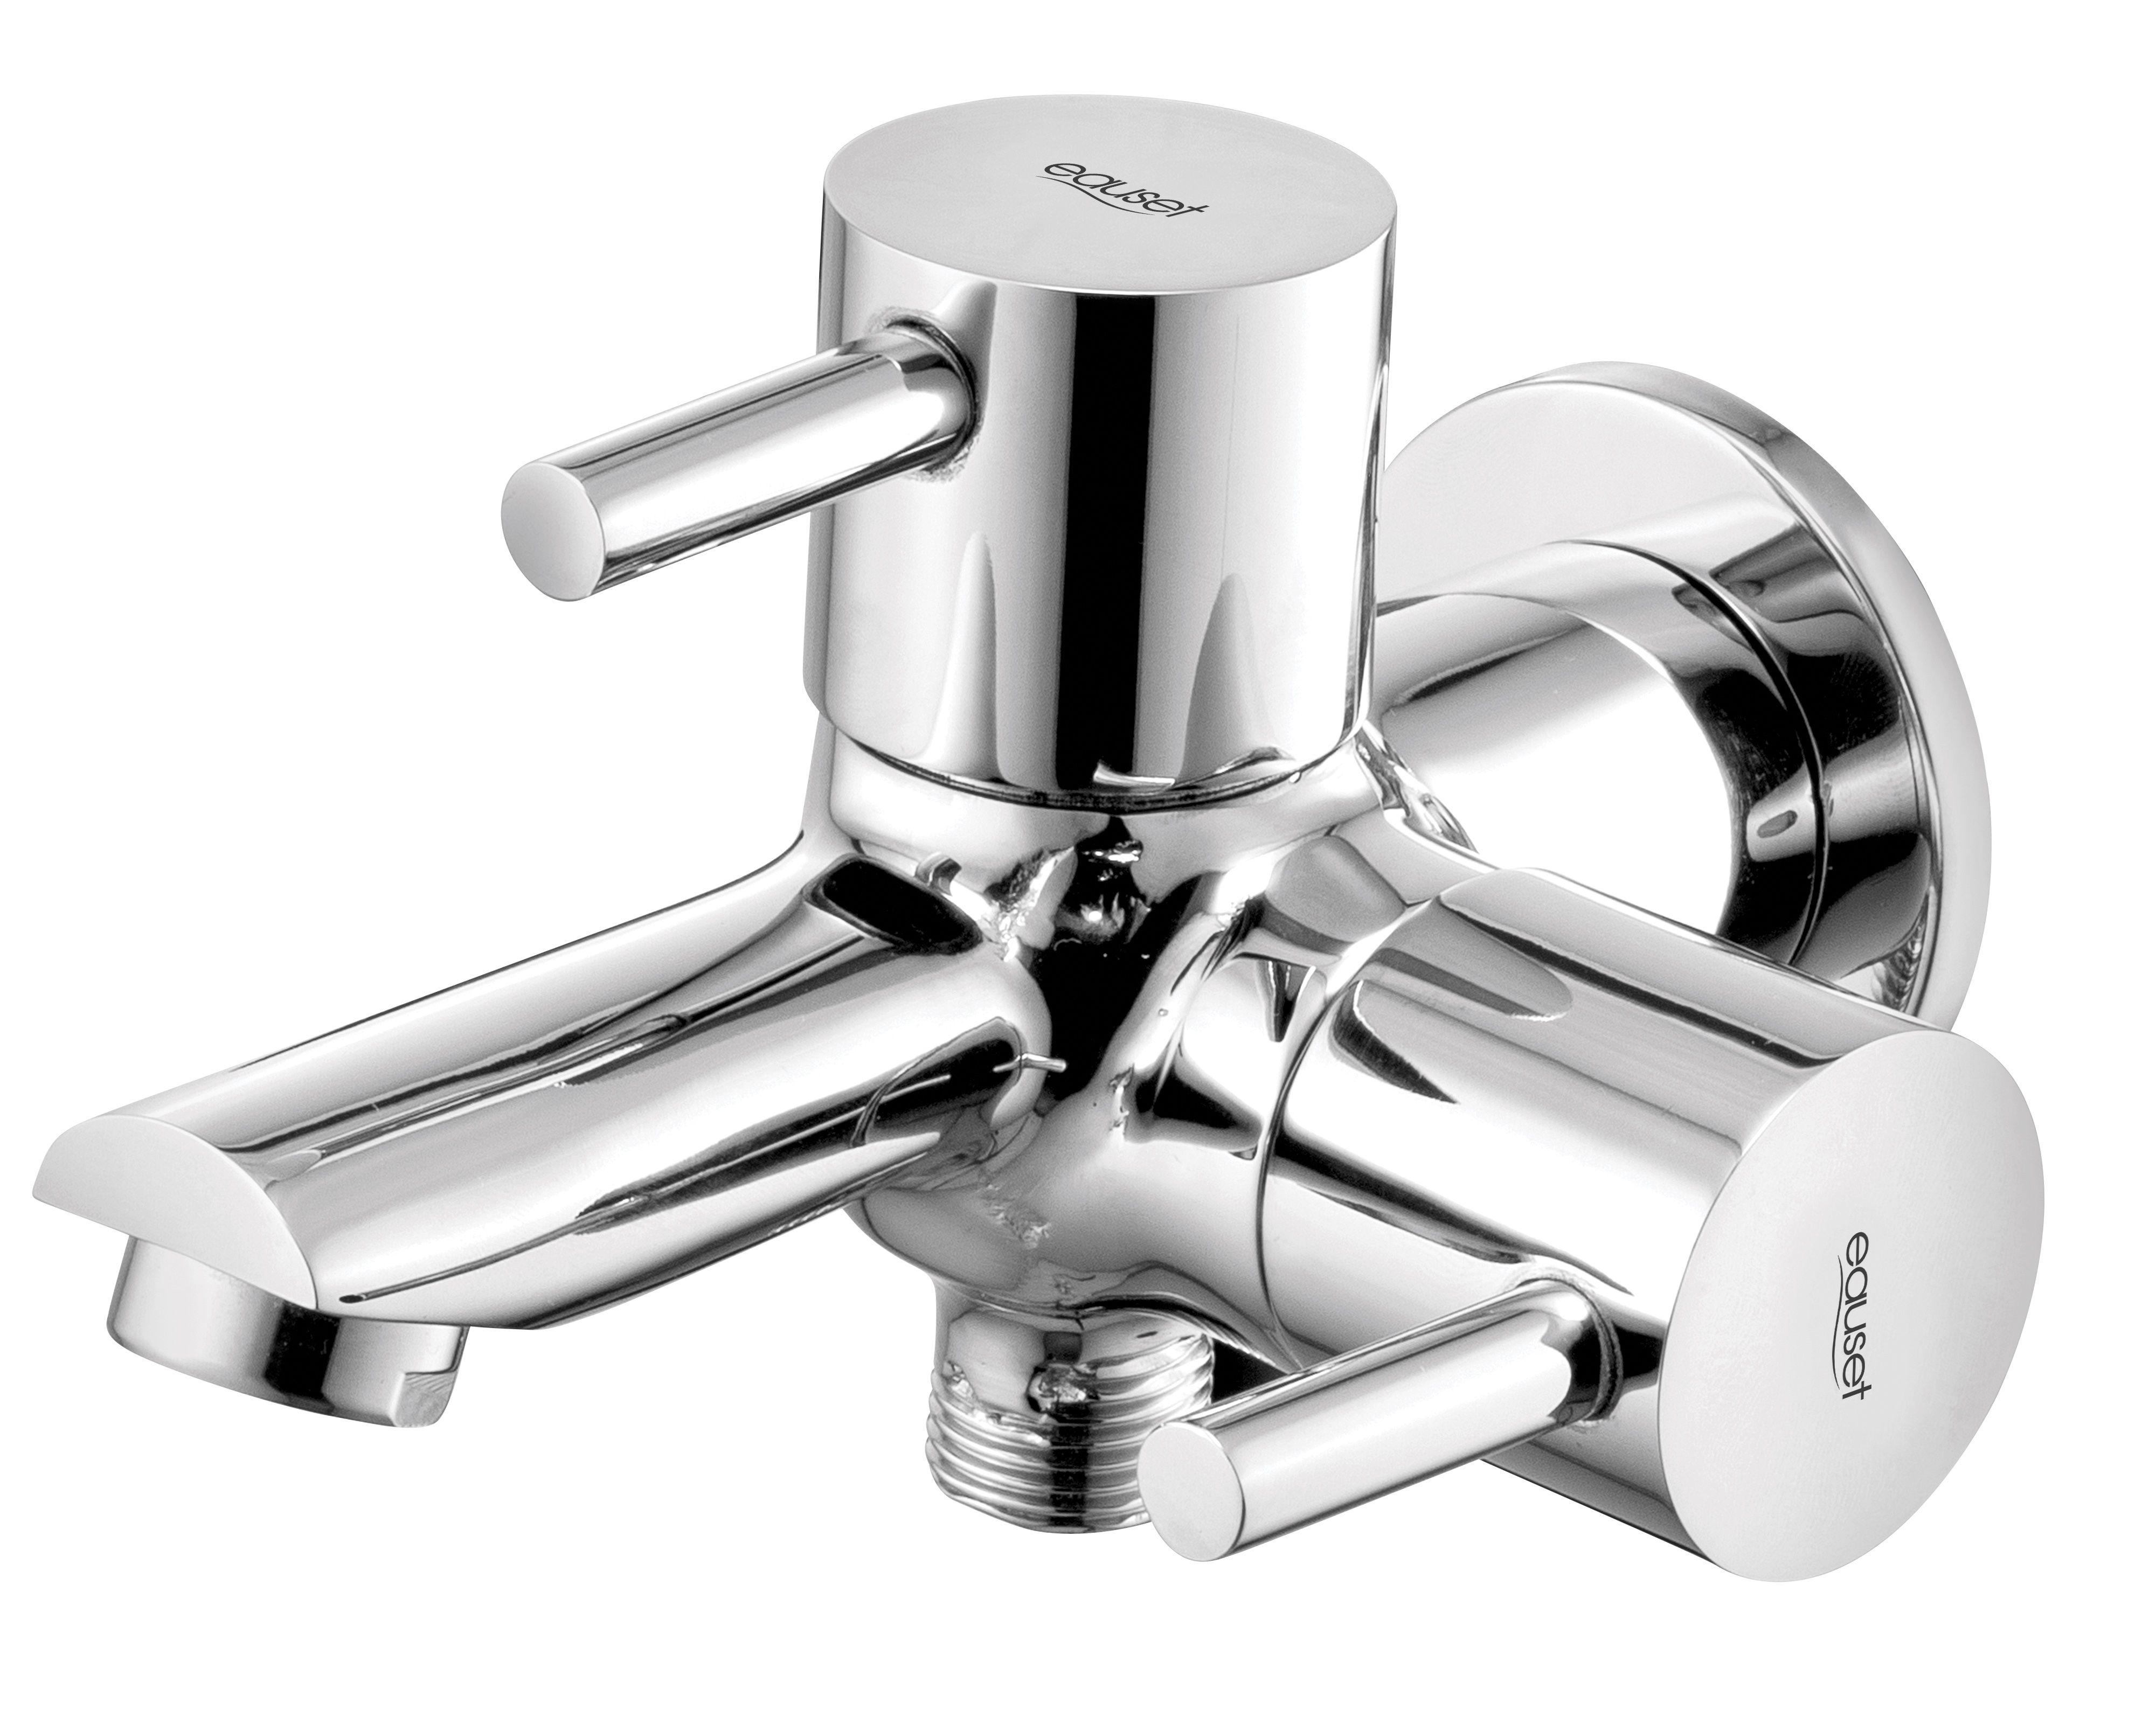 Two Way Bib Cock In Double Control System With Wall Flange